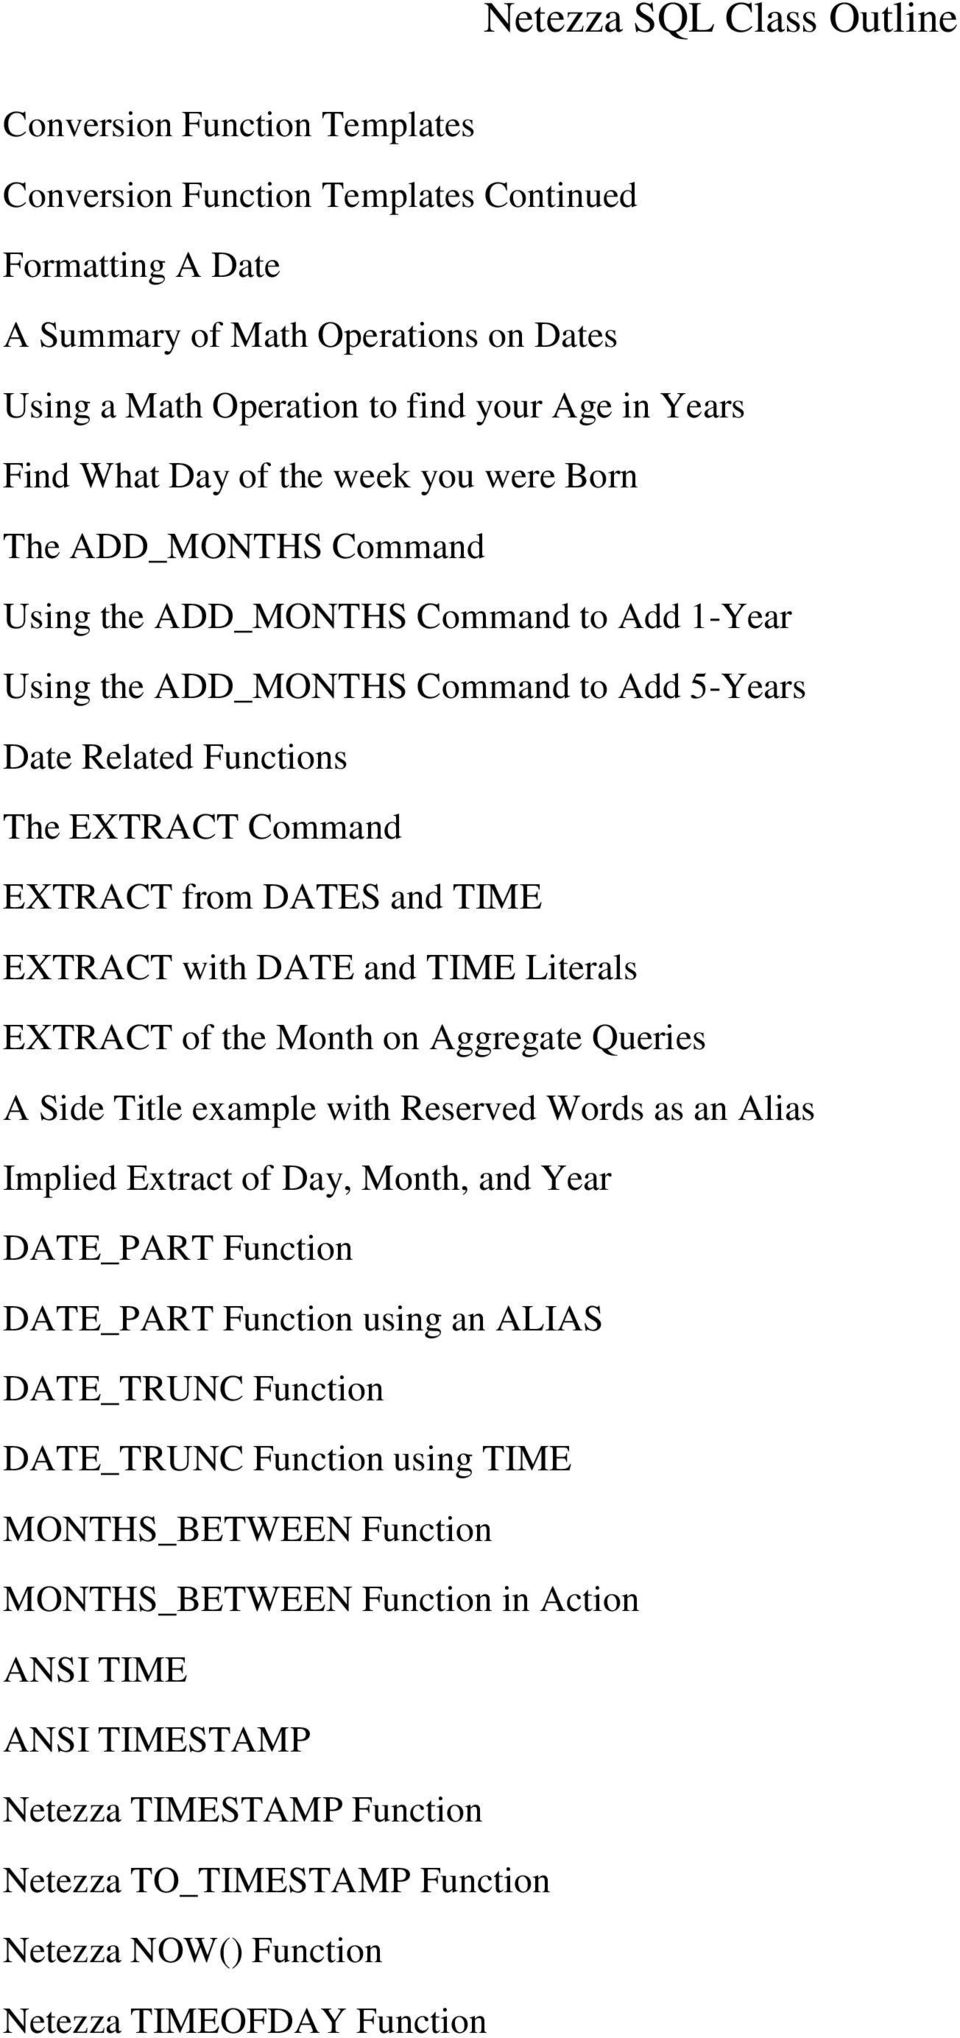 EXTRACT with DATE and TIME Literals EXTRACT of the Month on Aggregate Queries A Side Title example with Reserved Words as an Alias Implied Extract of Day, Month, and Year DATE_PART Function DATE_PART